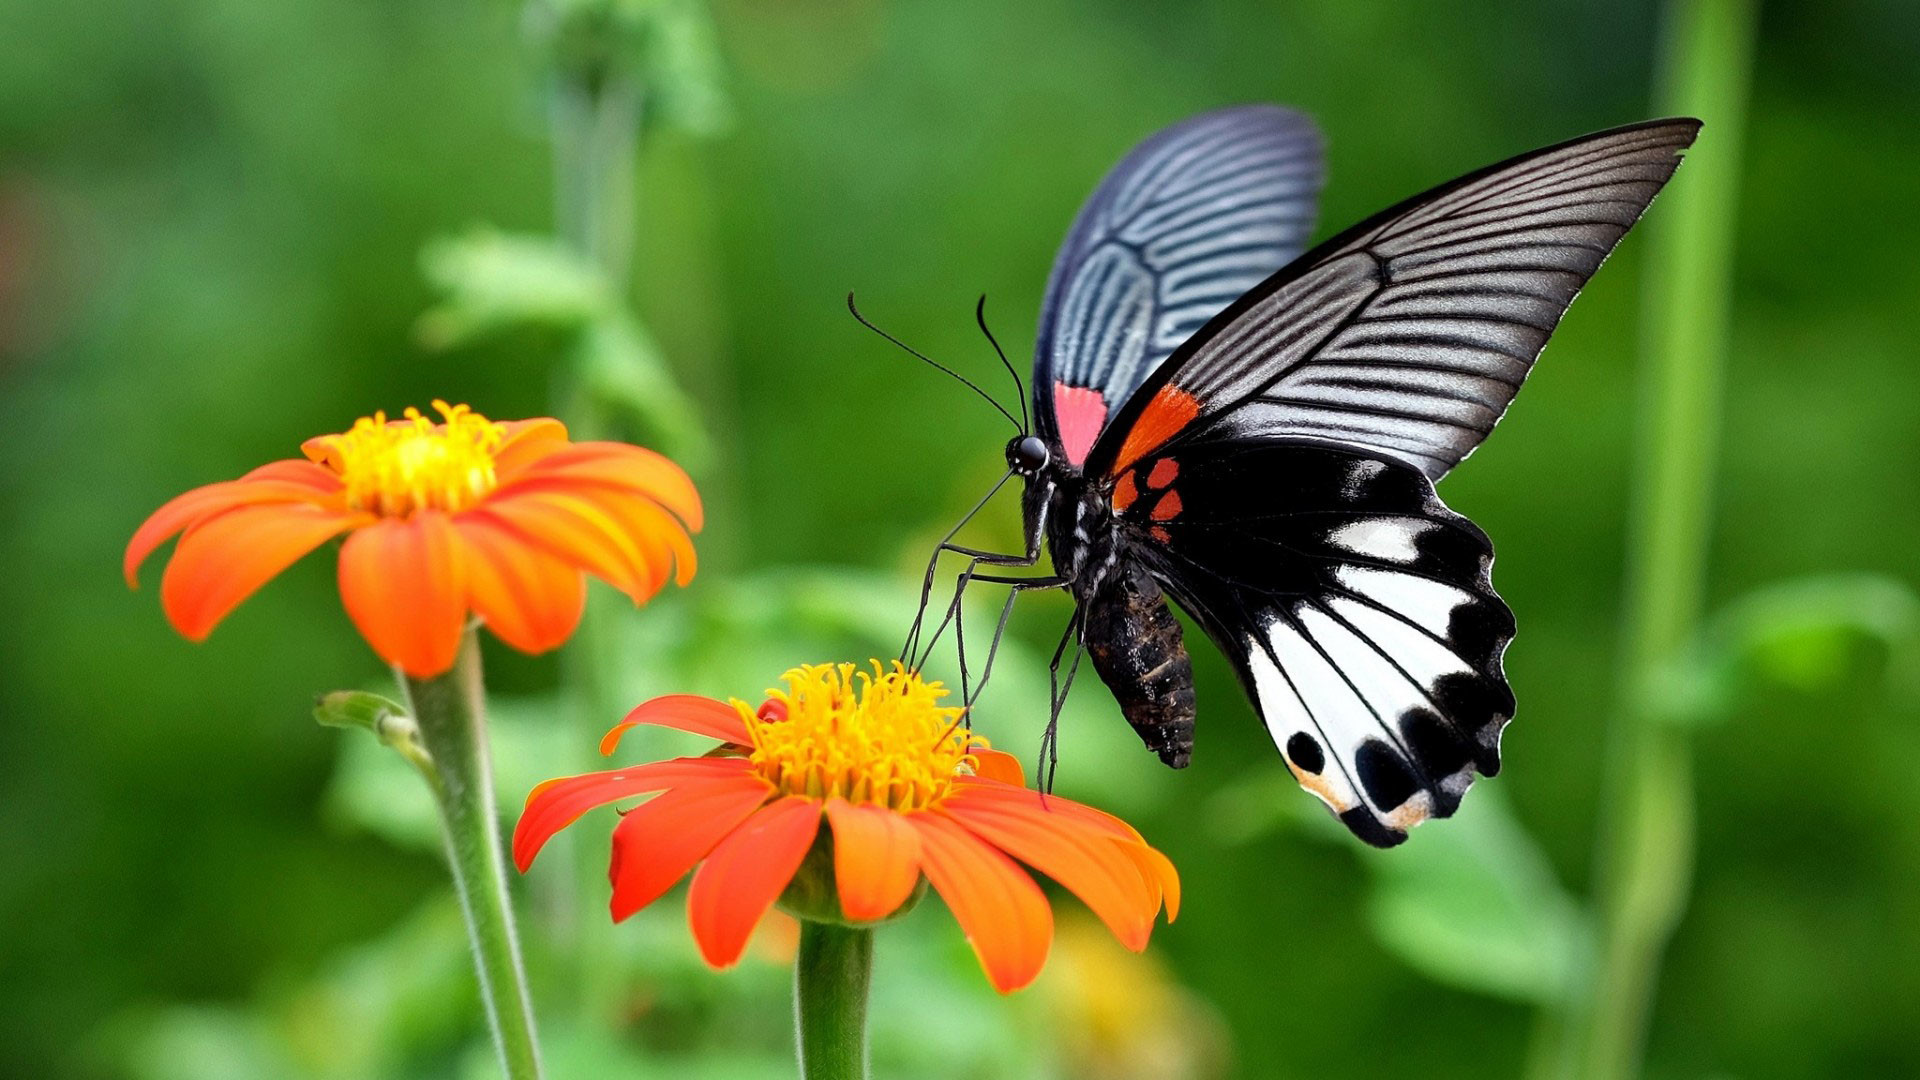 Image result for hd butterfly full